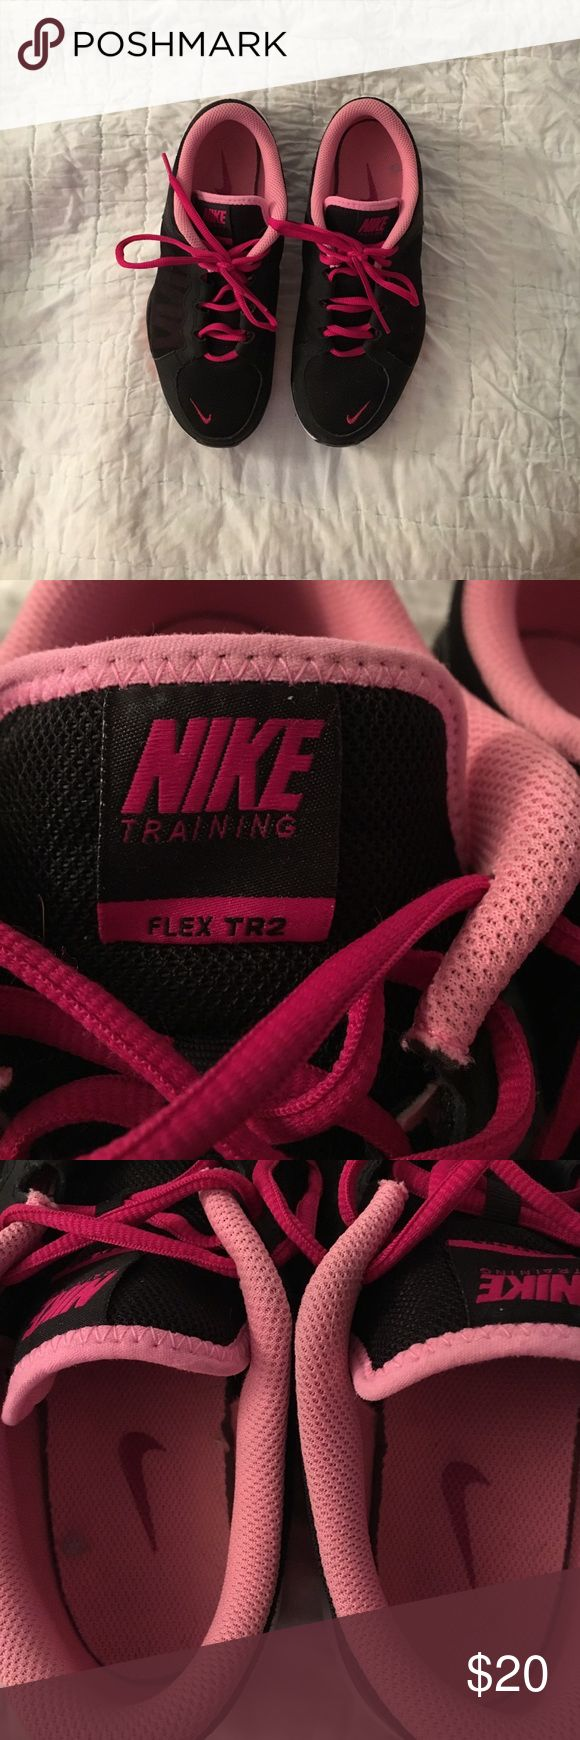 Women's Nike Training Women's 8 1/2 Nike Training Flex TR2. Black, pink, hot pink. Rarely worn. Paint spot in left shoe. See pics. Lots of life left in them. Please see all pics and feel free to make a reasonable offer. No holds. No trades. Nike Shoes Athletic Shoes